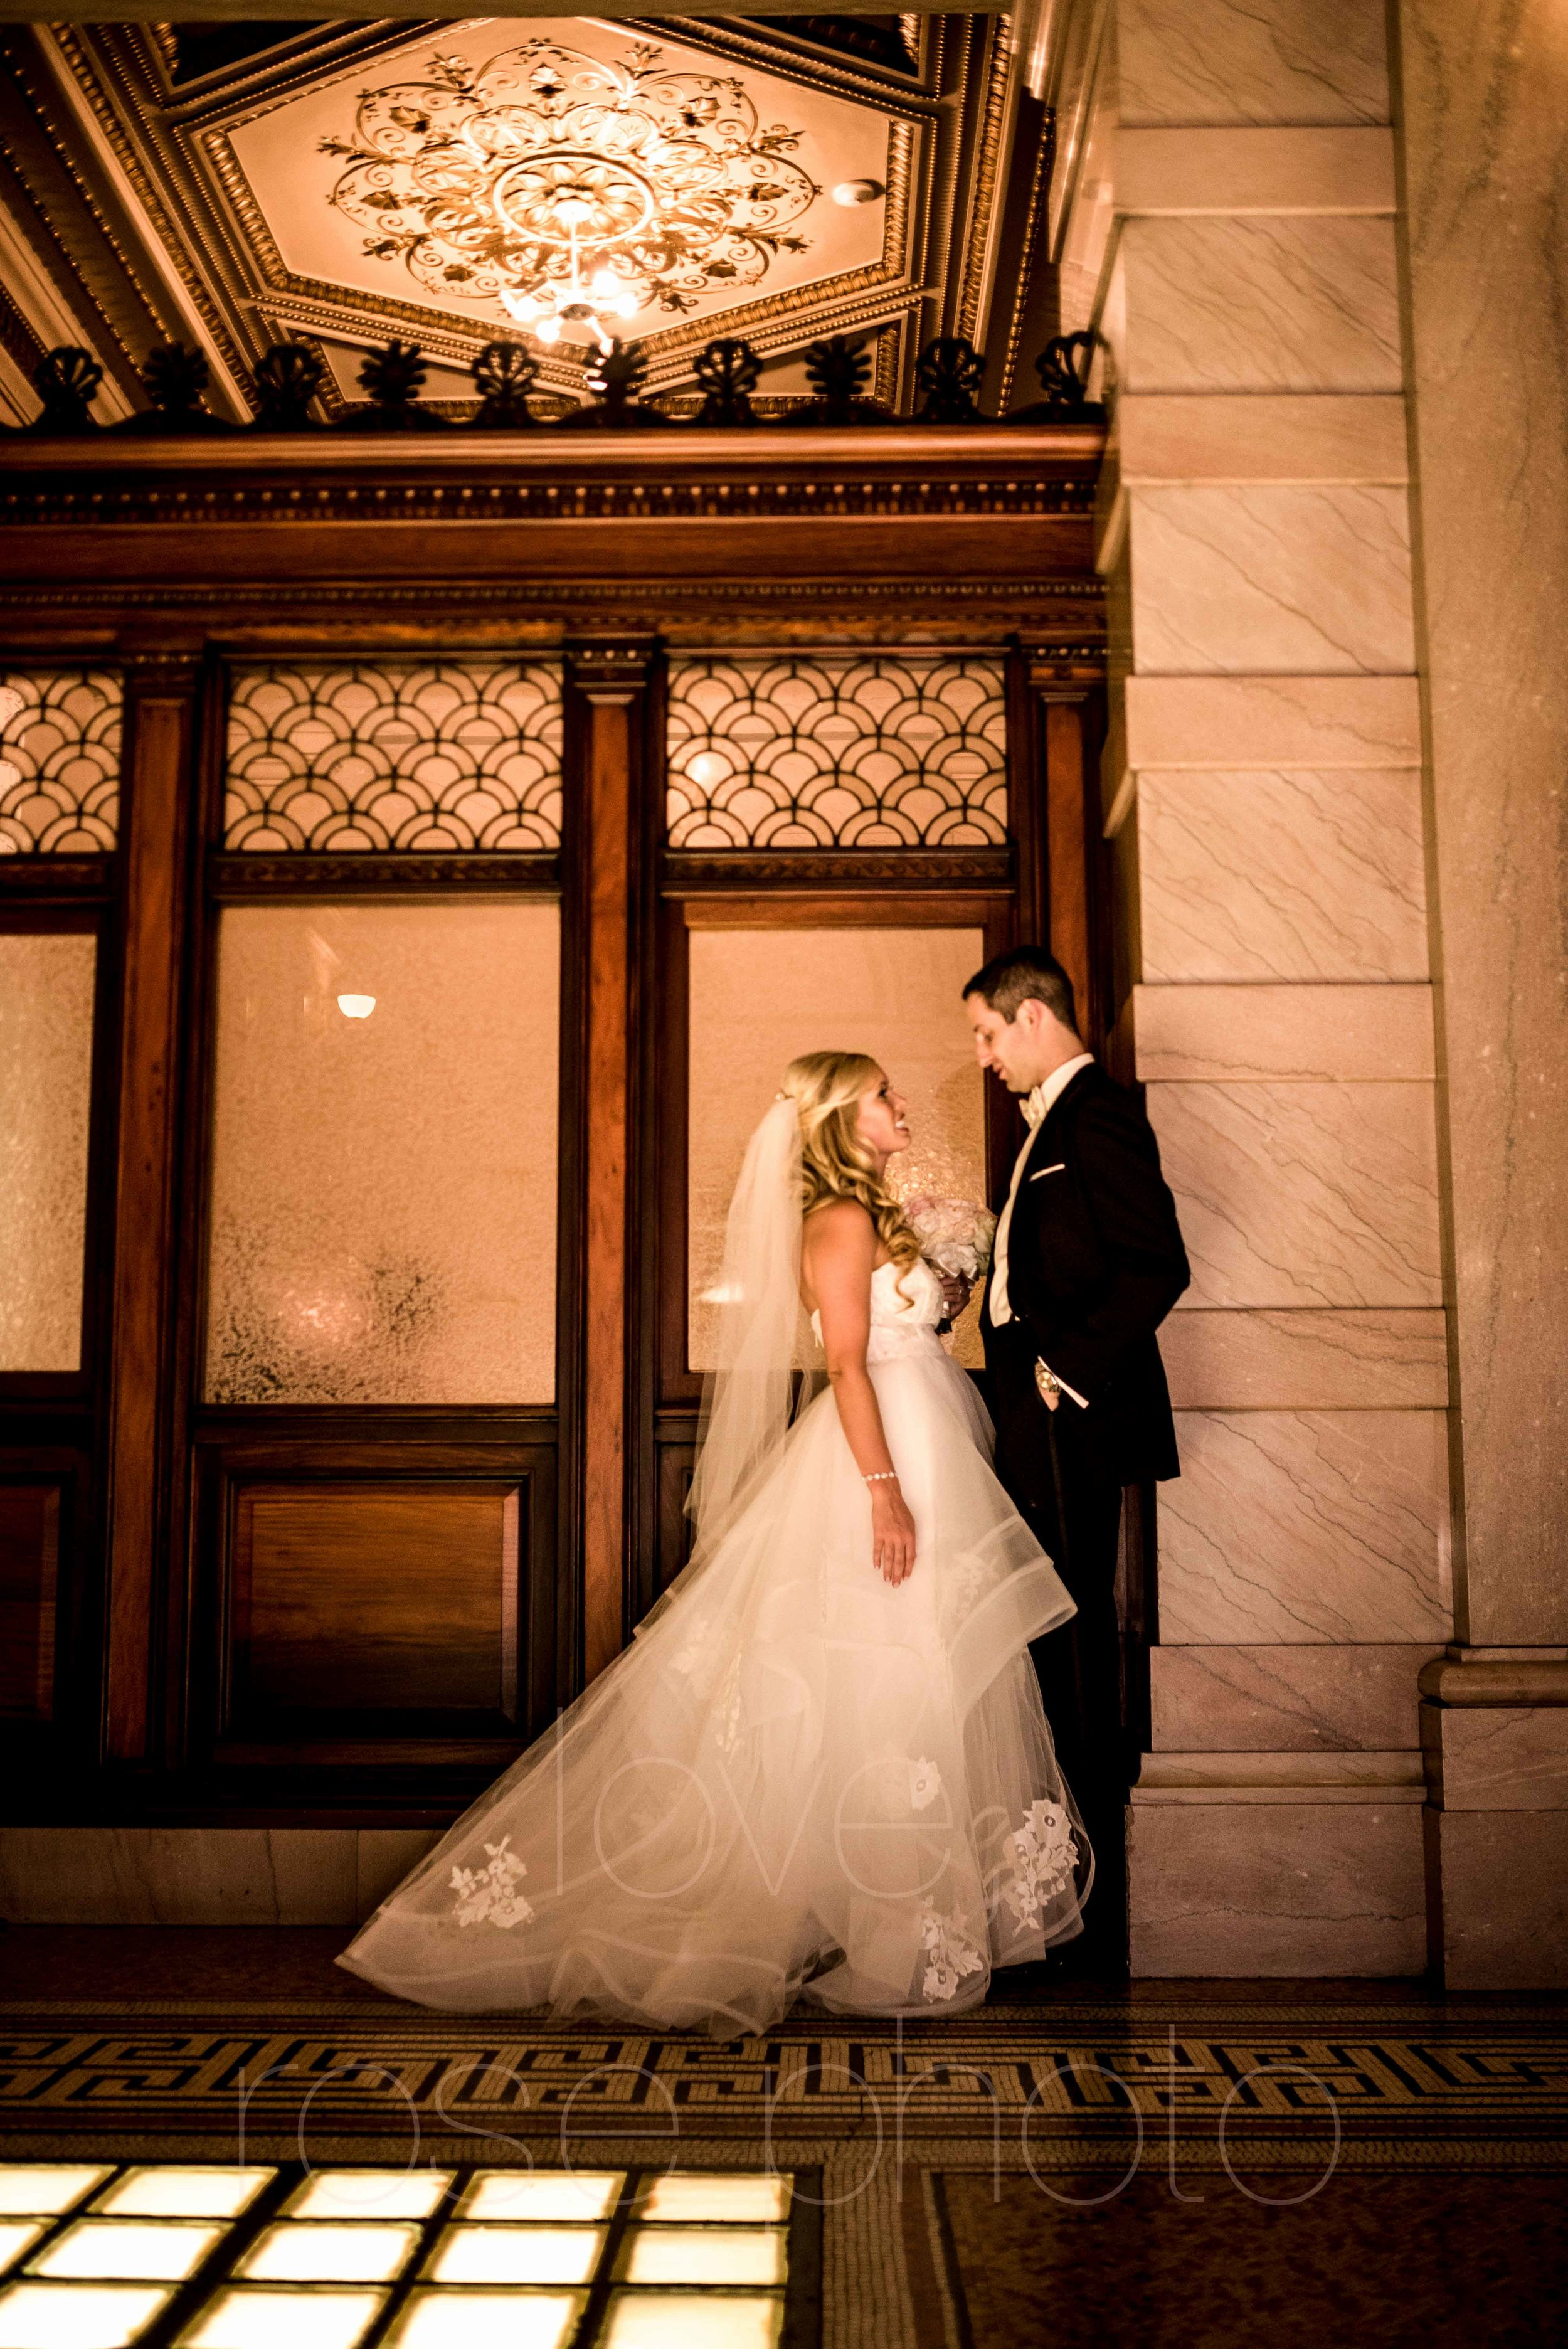 Rose Photo downtown Chicago wedding mag mile new years eve best wedding photography-26.jpg